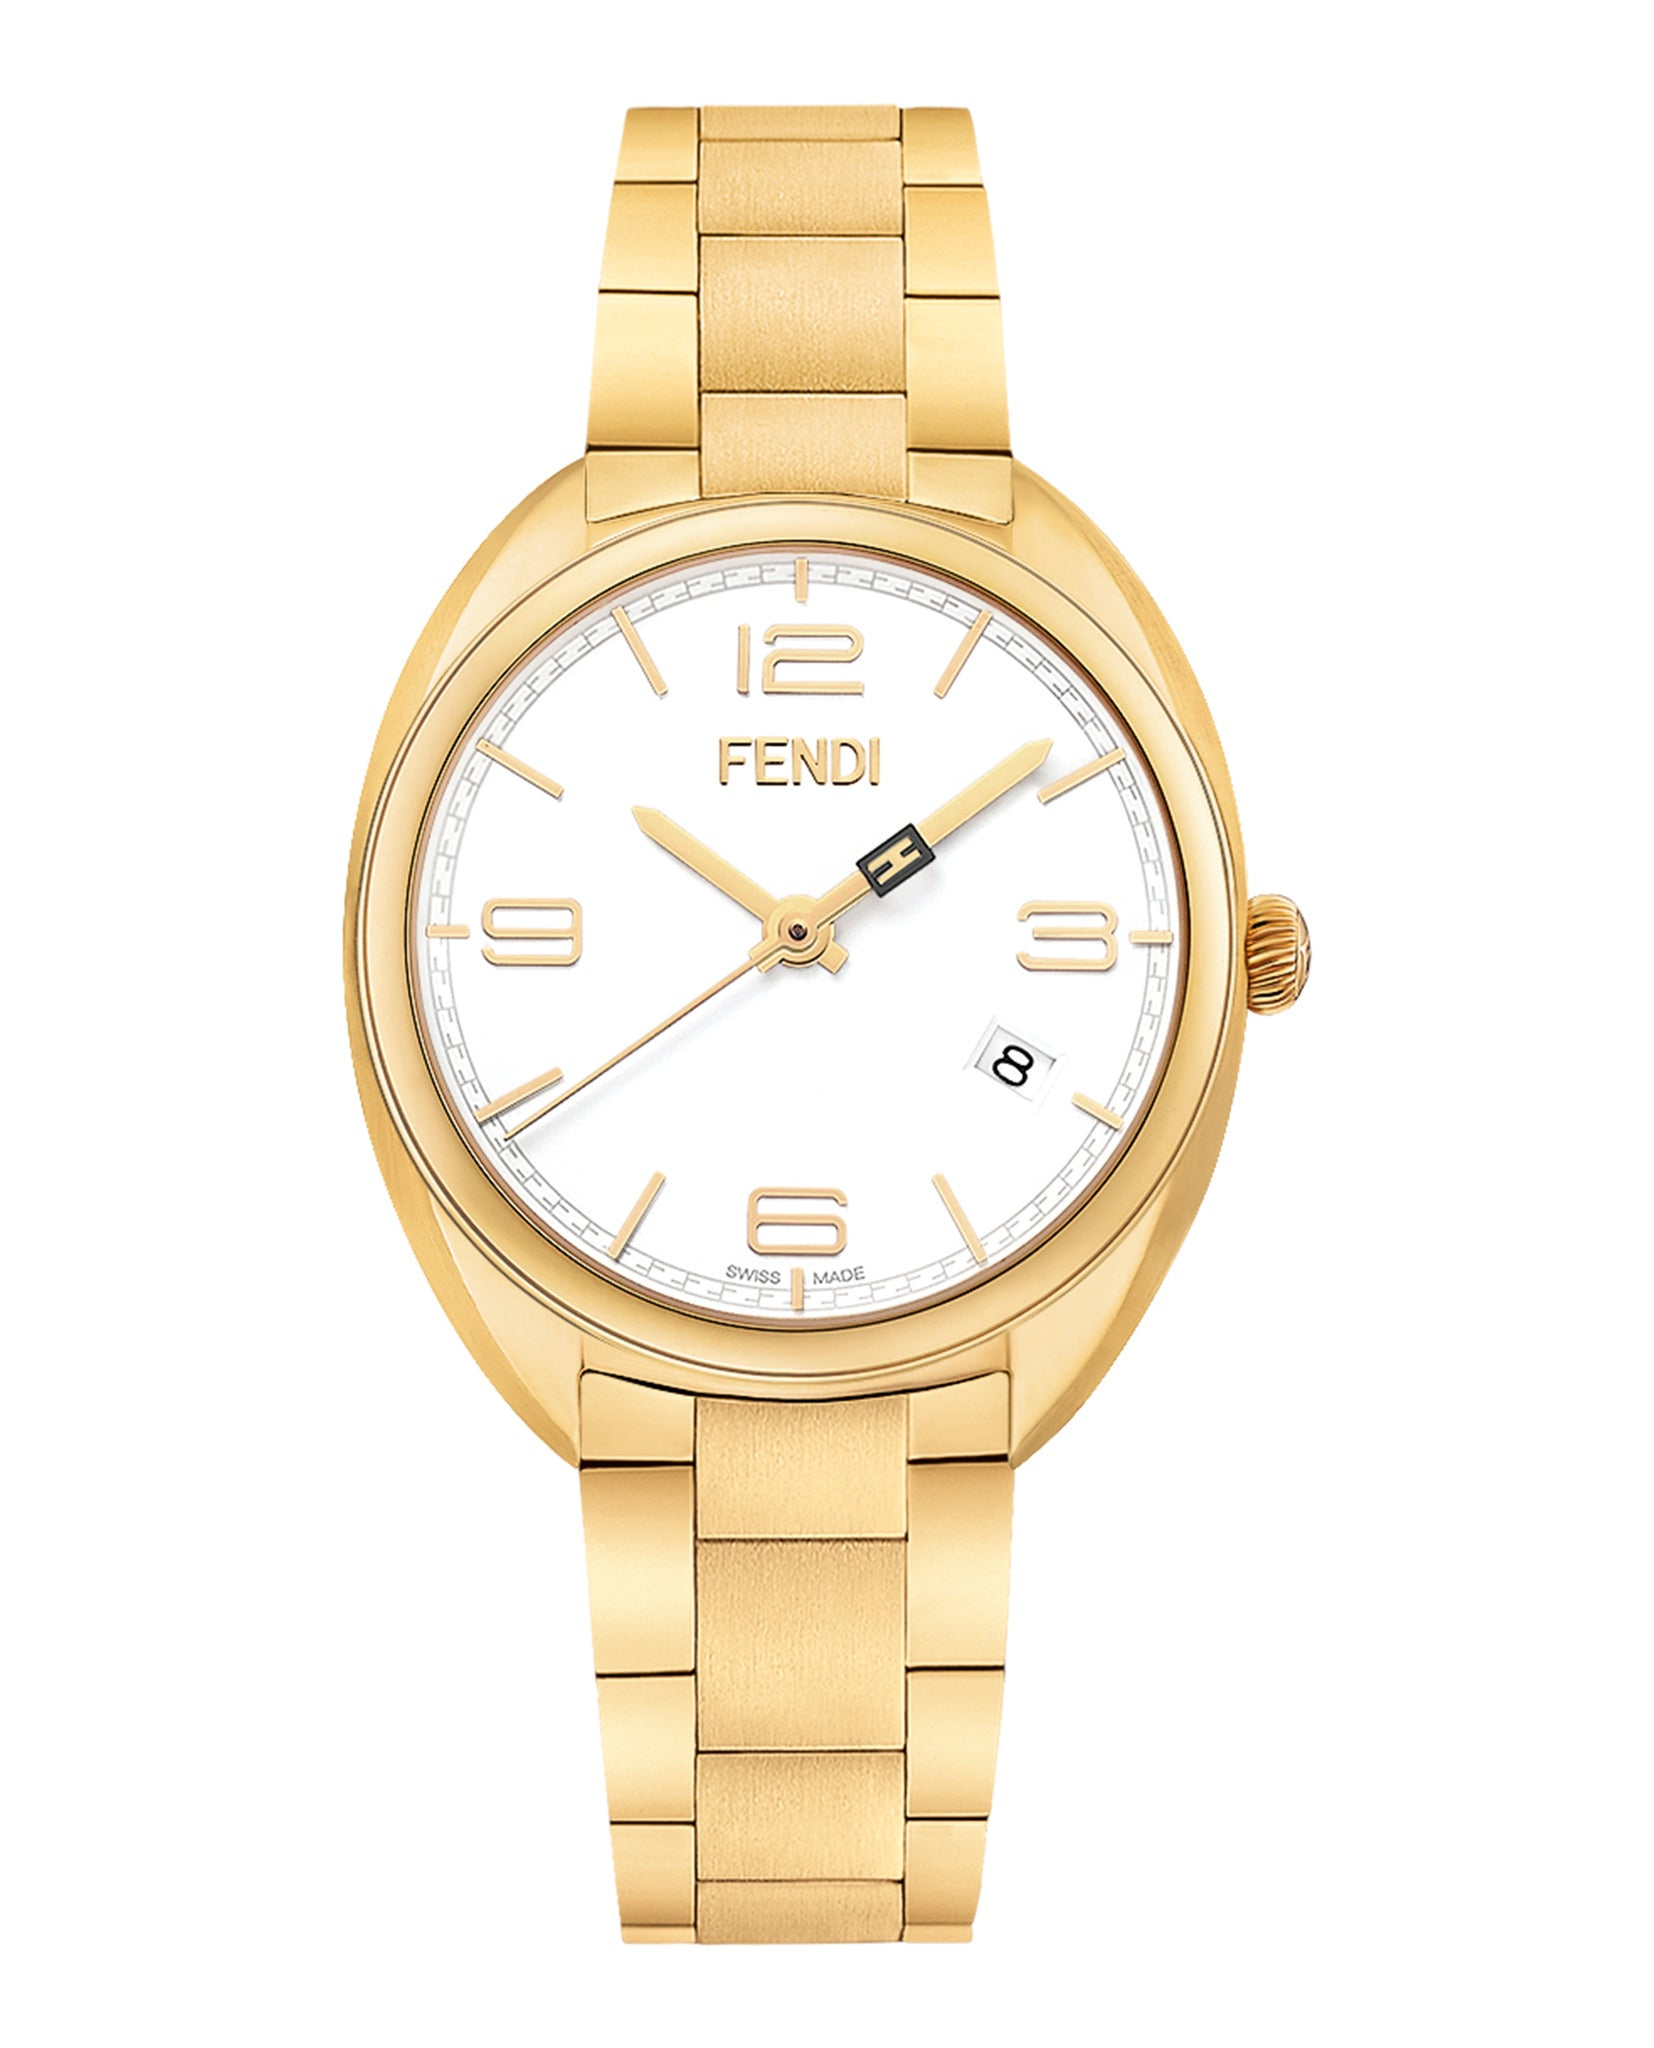 Fendi Momento Fendi Watch